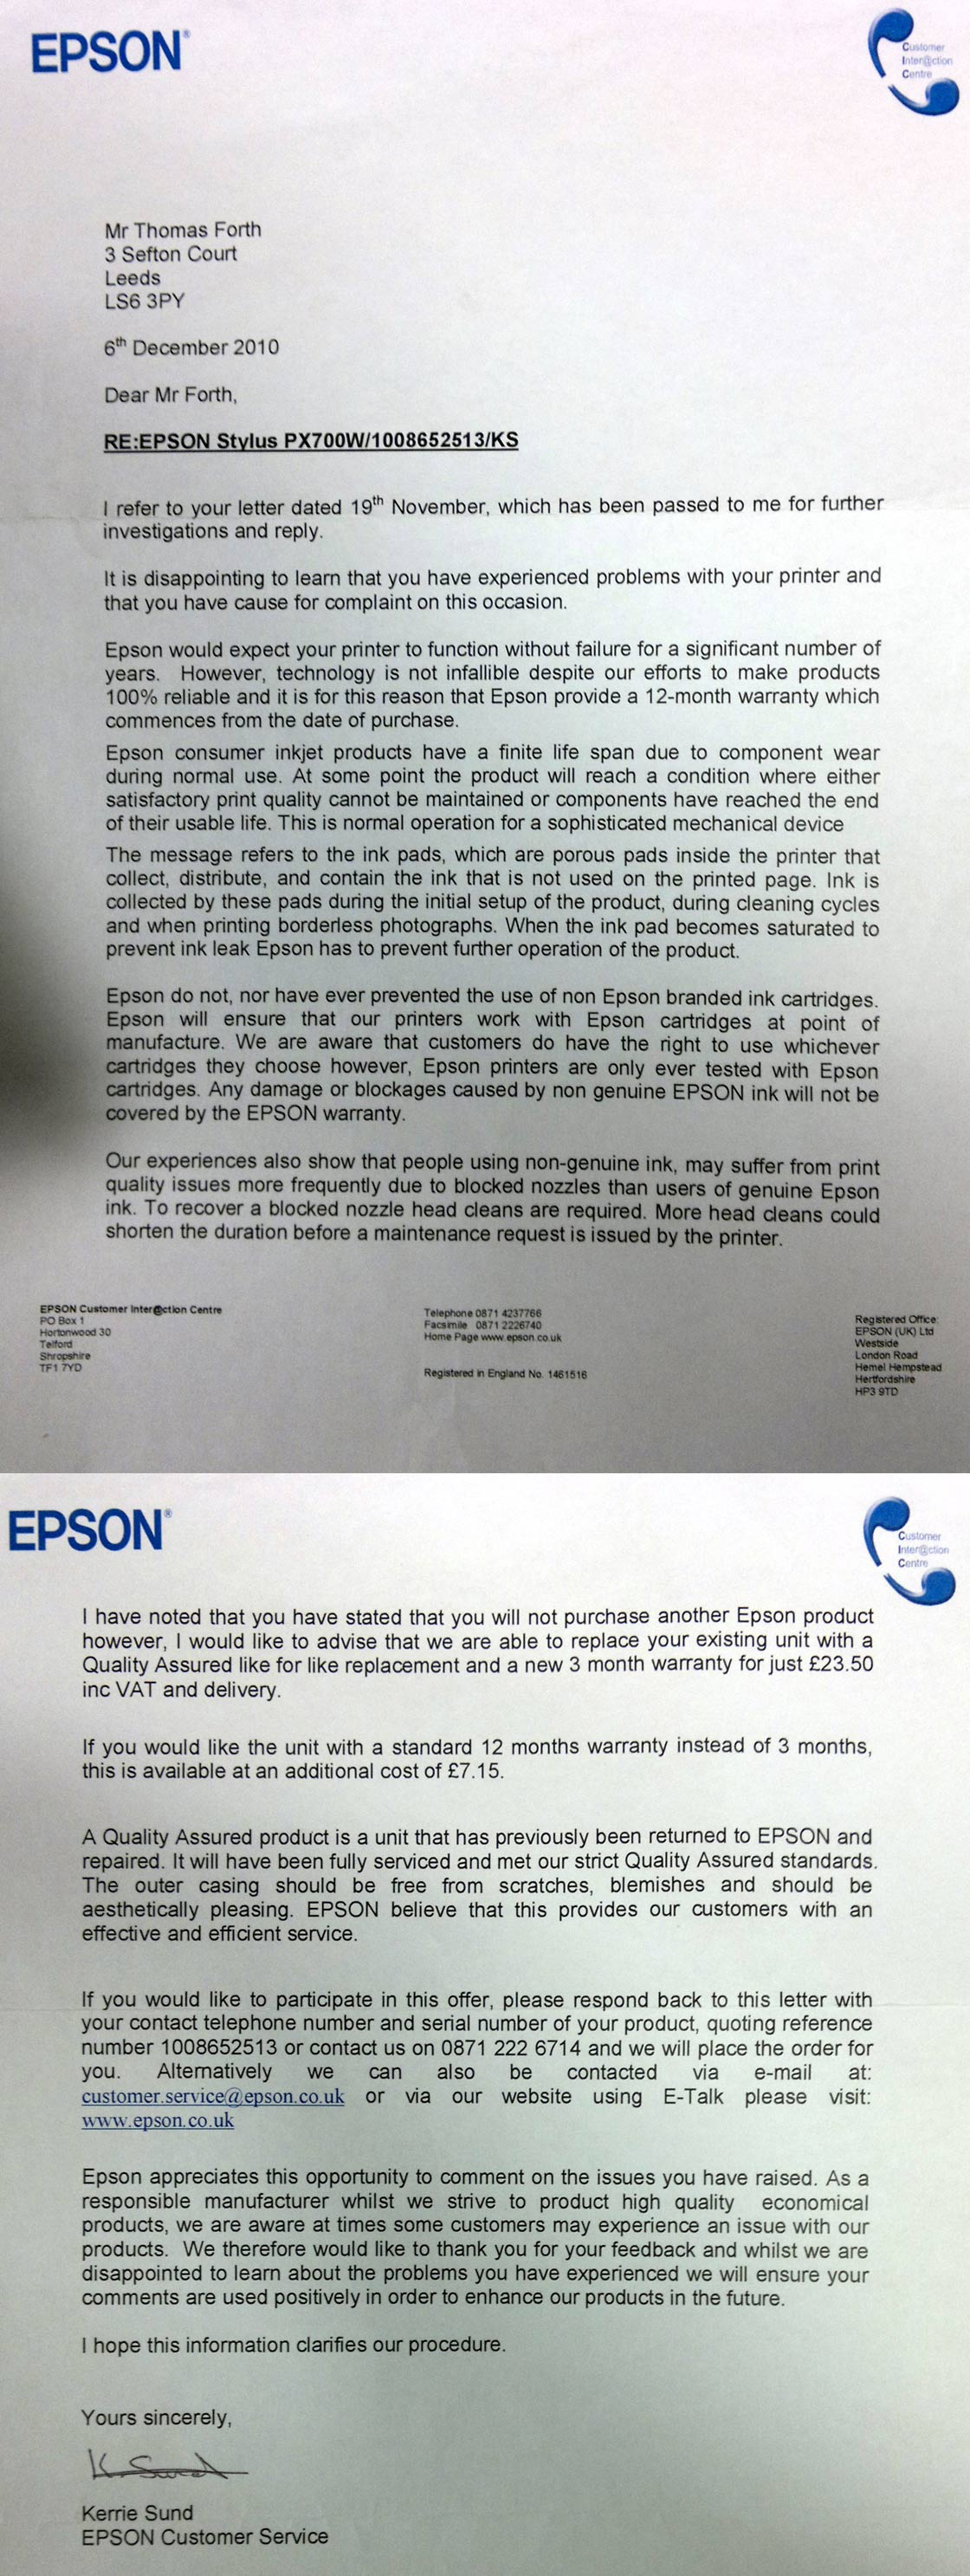 Epson Waste Ink Resetter for px700w and similar